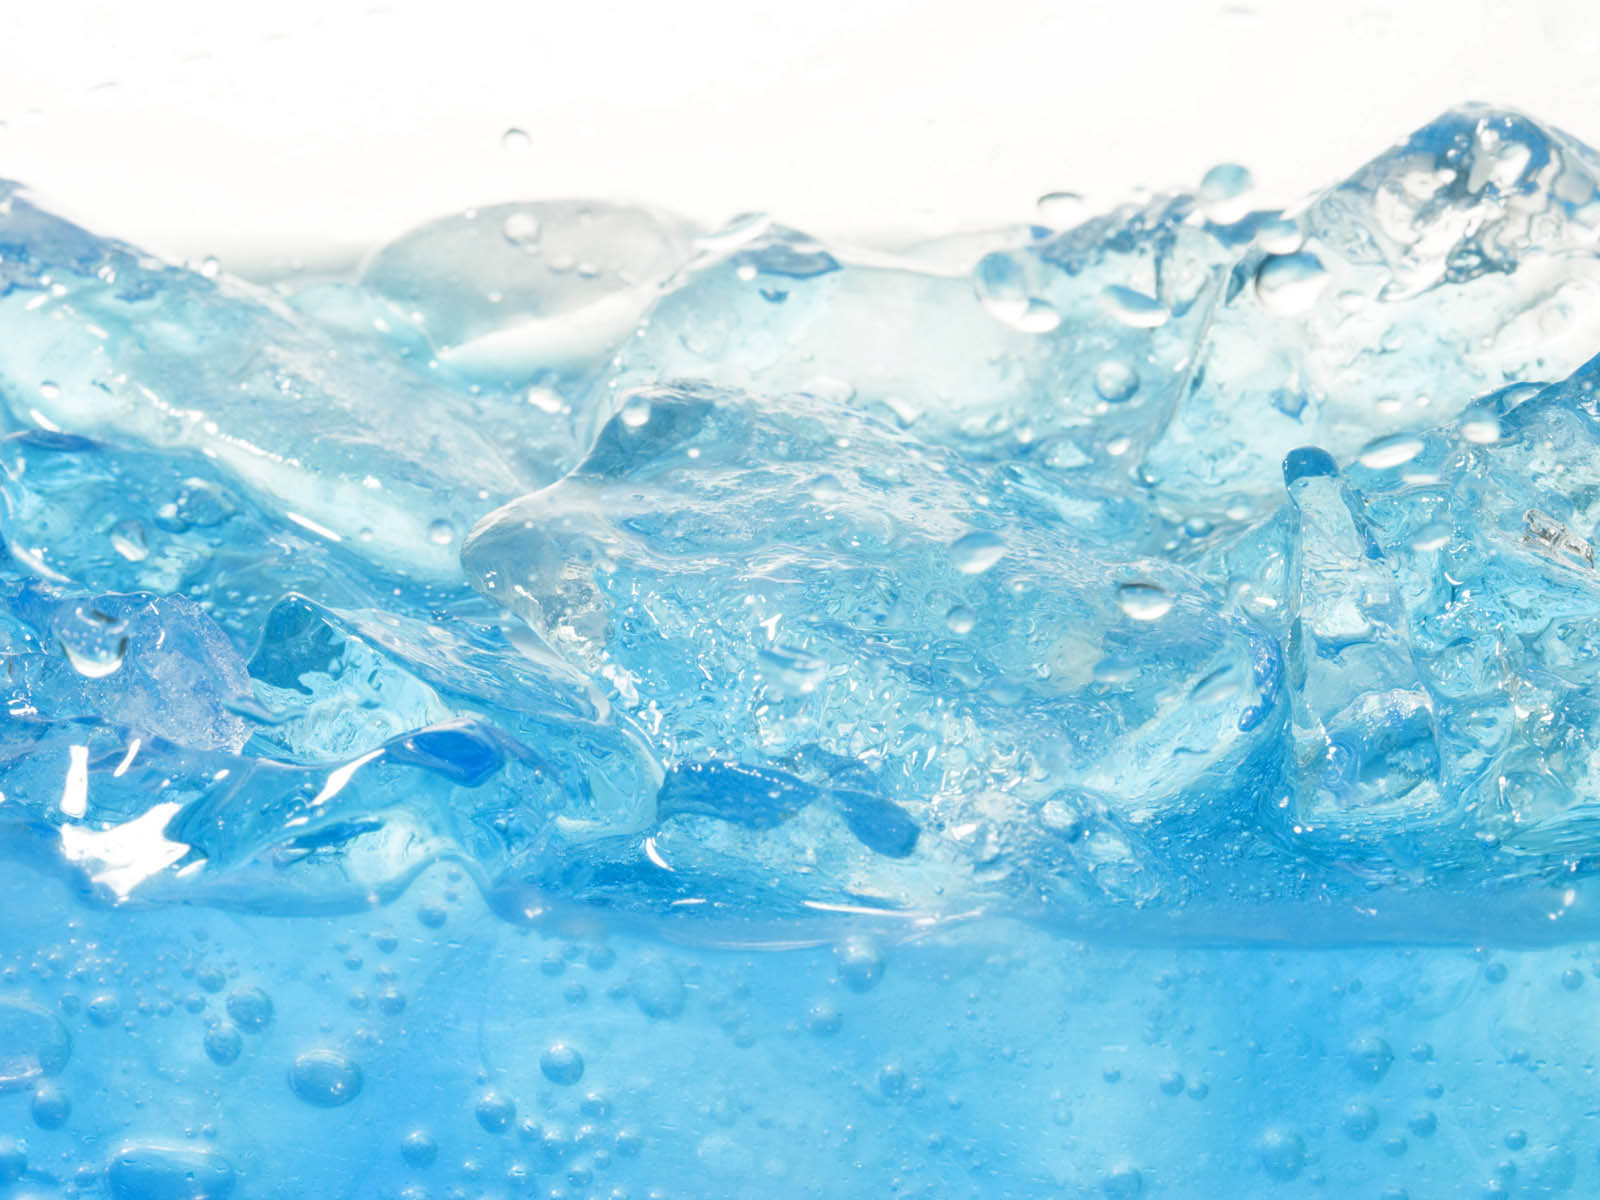 wallpaper Crystal Blue Water Wallpapers 1600x1200